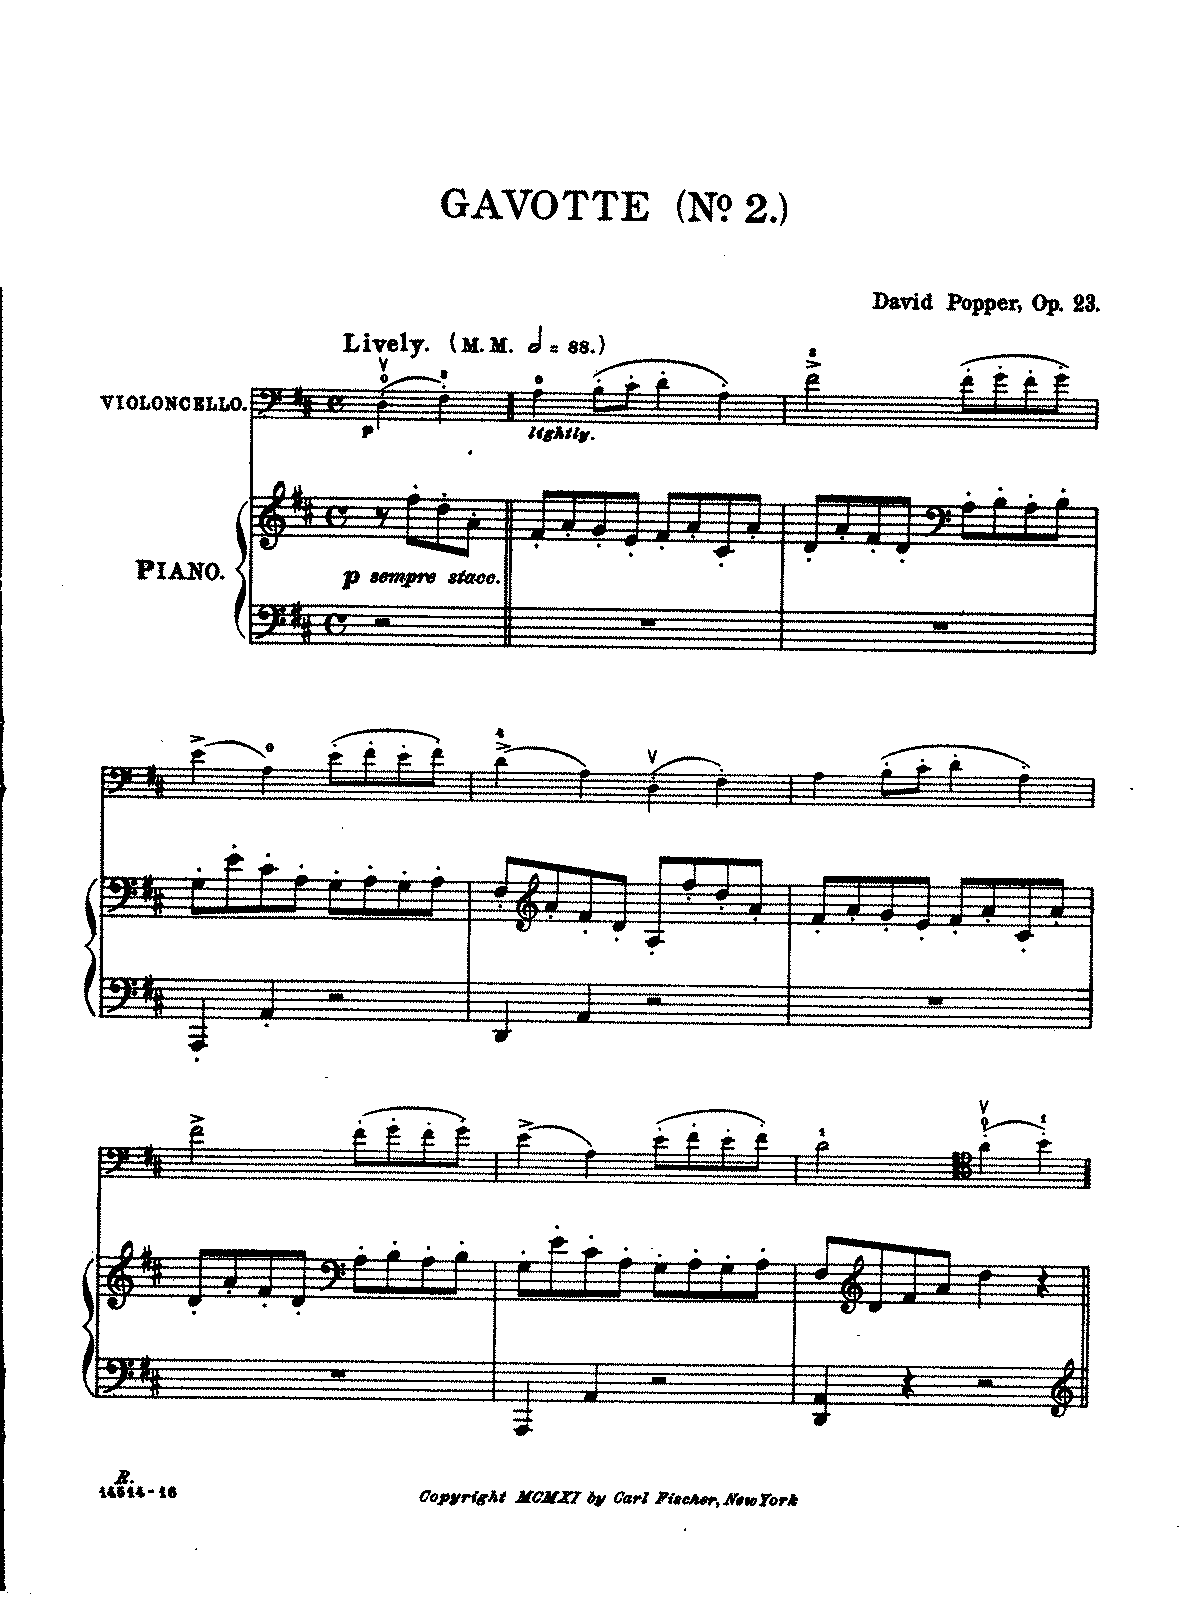 PMLP54267-Popper - Gavotte No2 Op23 Cello and piano piano.pdf